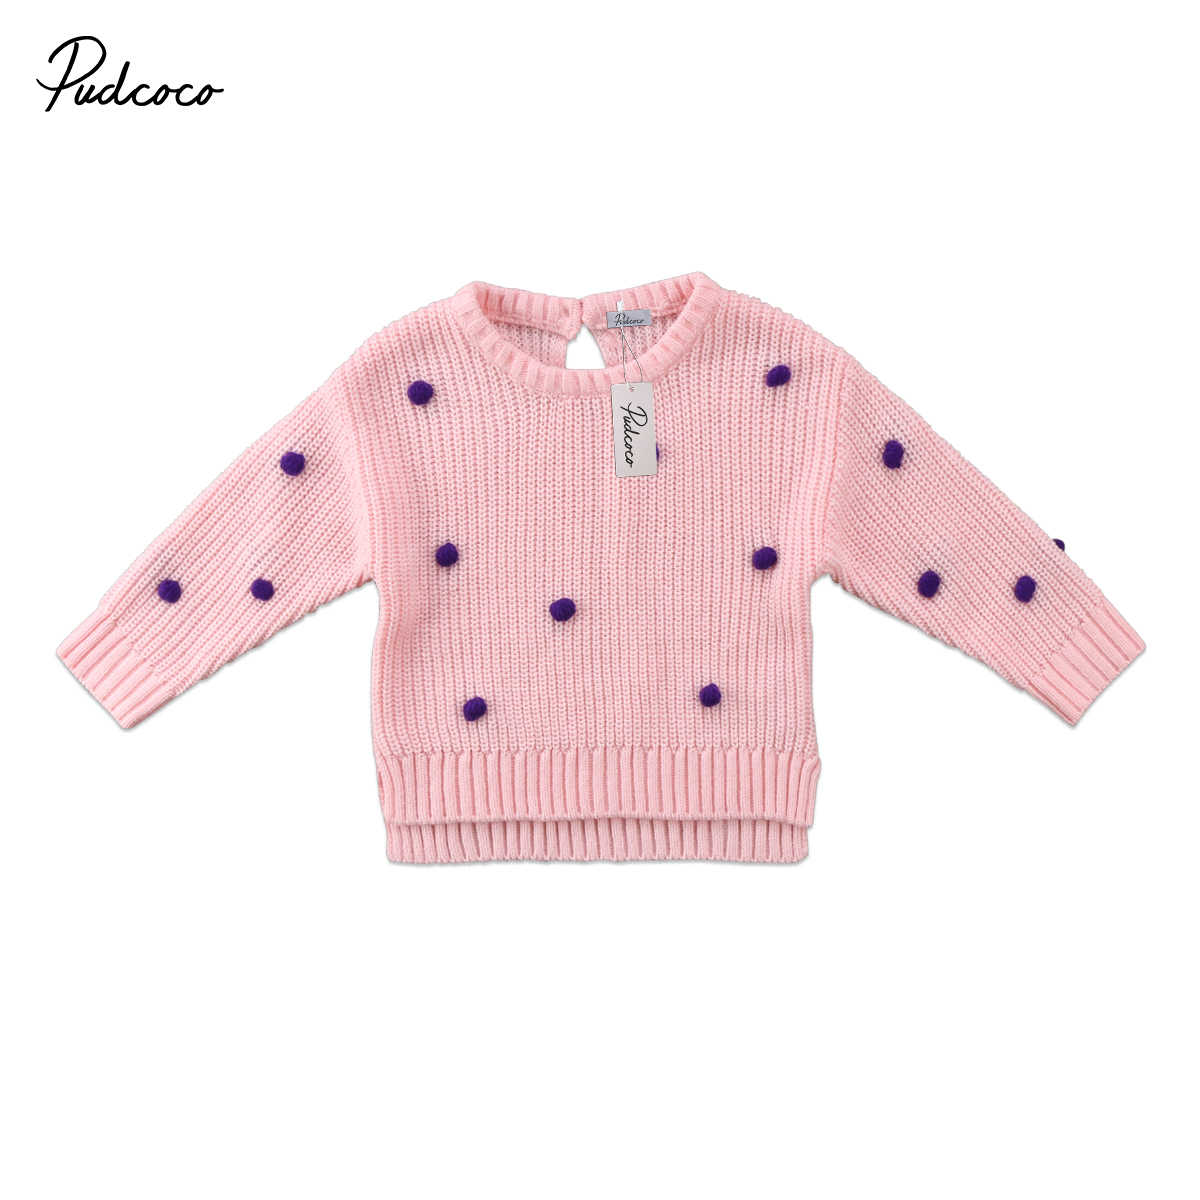 81b63ebf4a00 Brand New 2018 pudcoco Newest Arrivals Girls Kids Winter Knite Sweater Baby  Knitwear Pullover Tops Sleeve